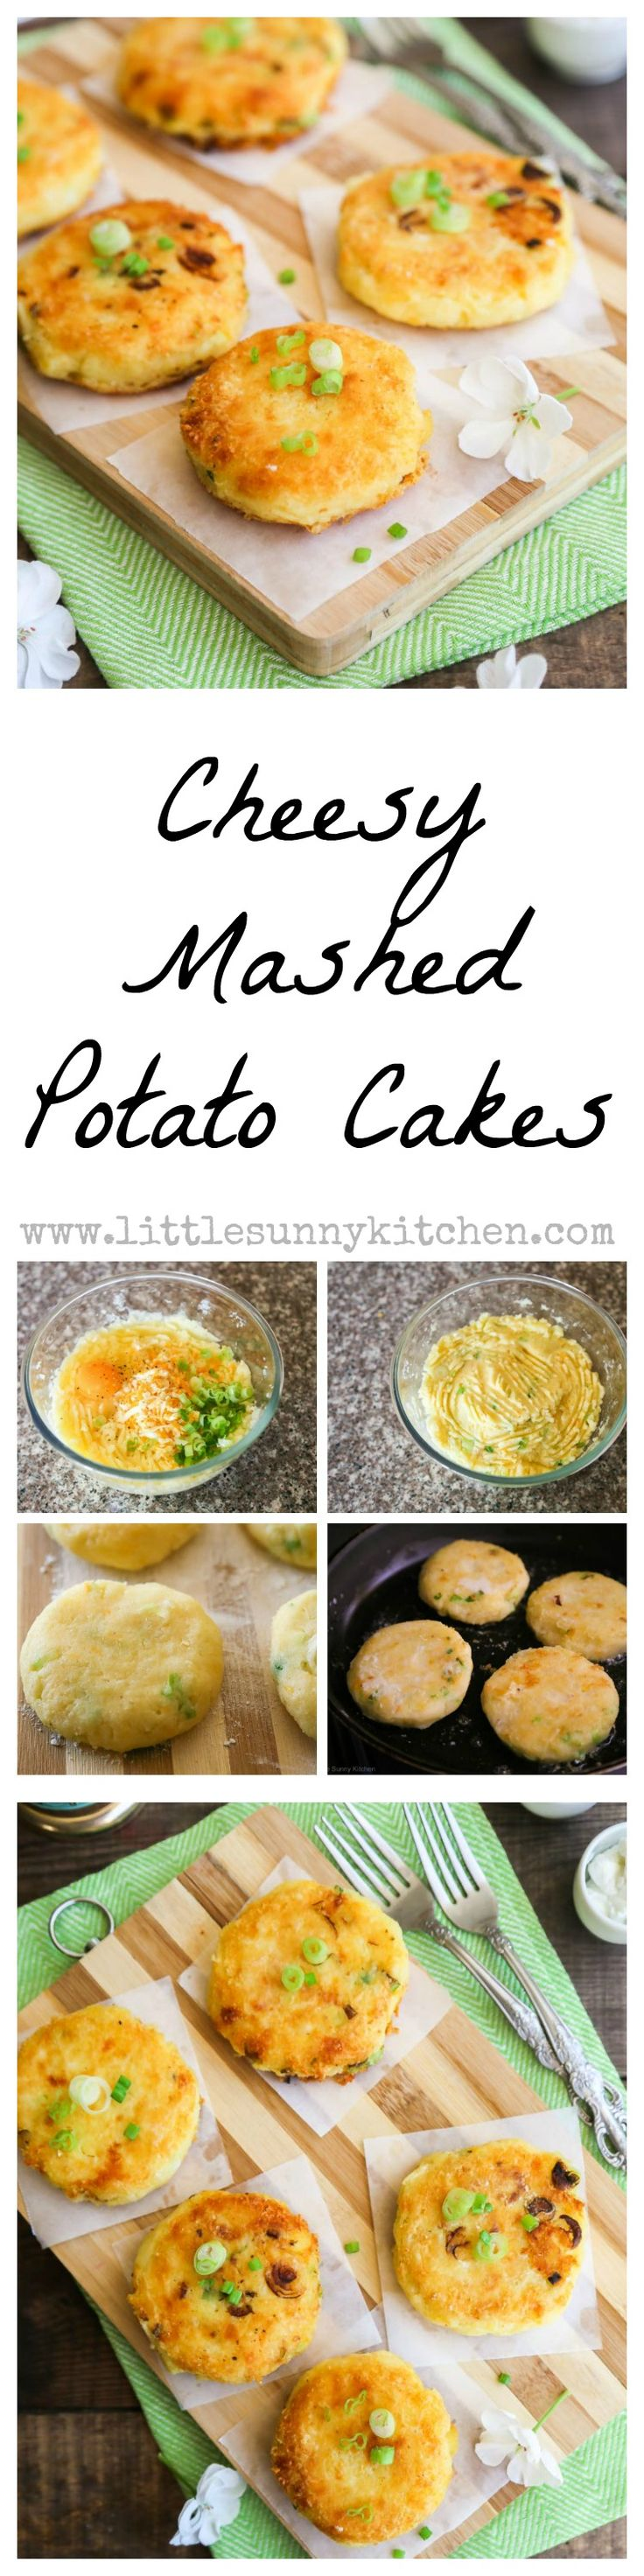 Cheesy Mashed Potato Cakes